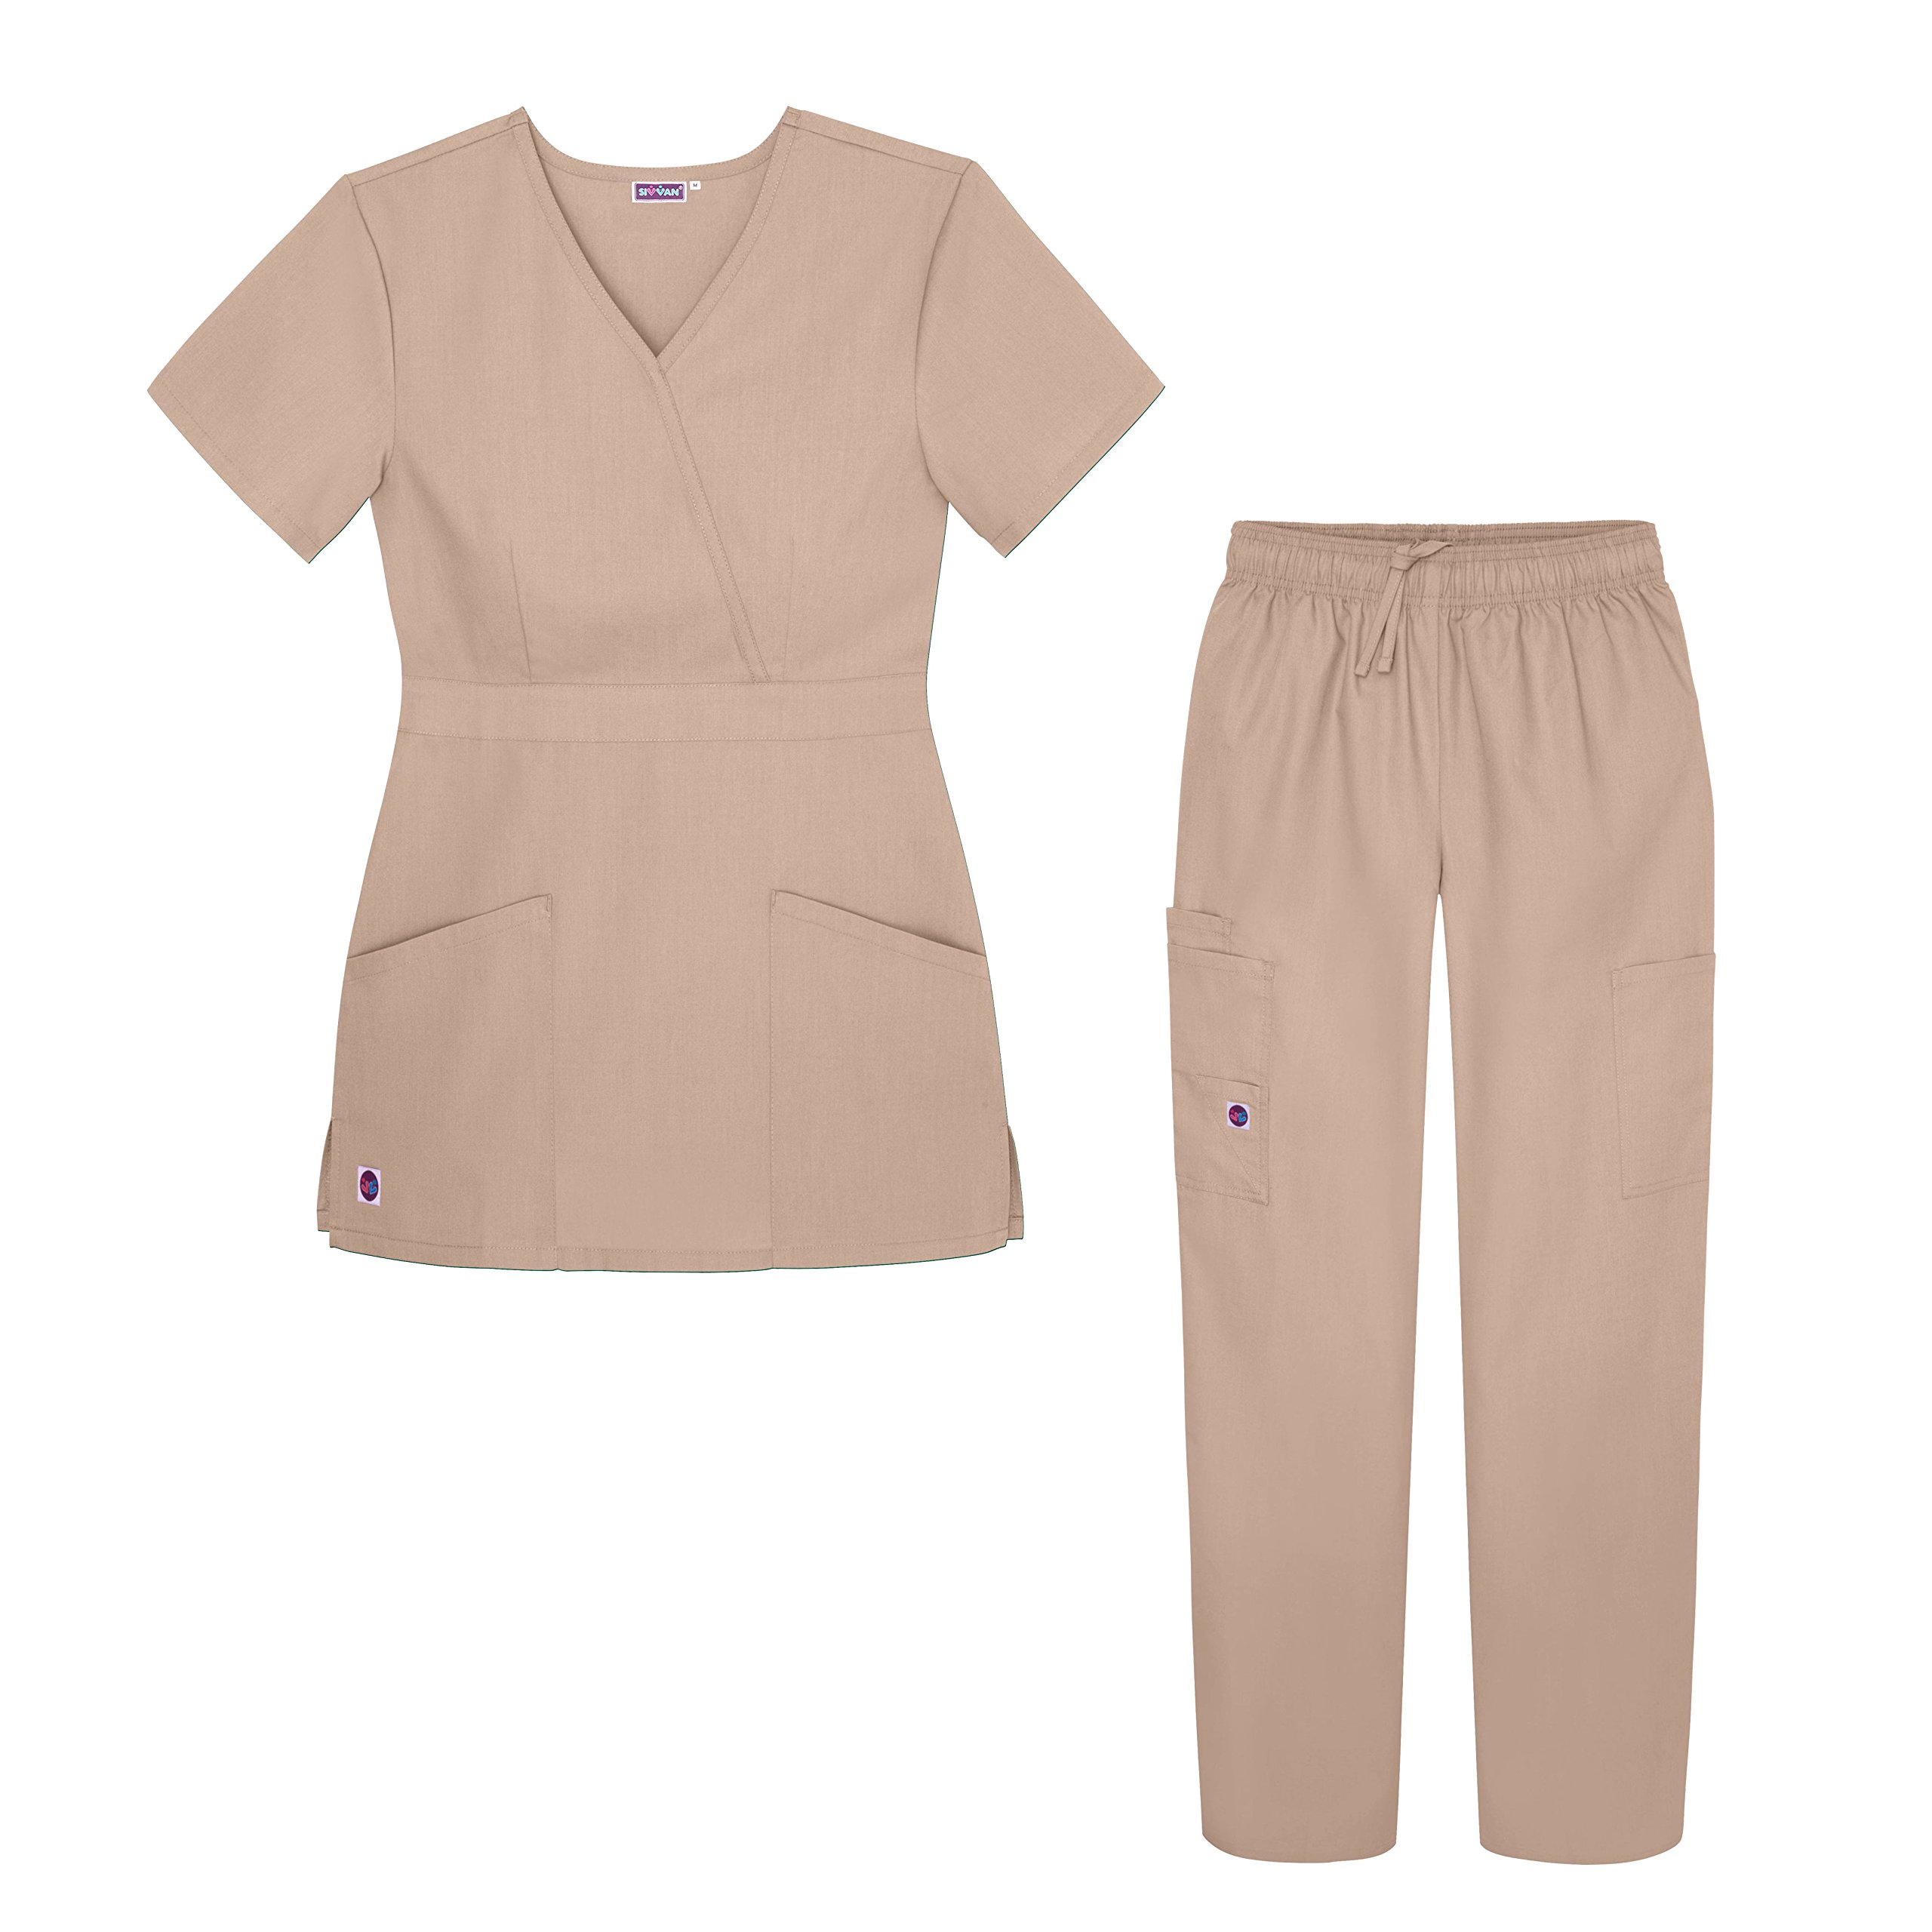 Sivvan Women's Scrub Set - Multi Pocket Cargo Pants & Stylish Mock Wrap Top - S8401 - KKI - M